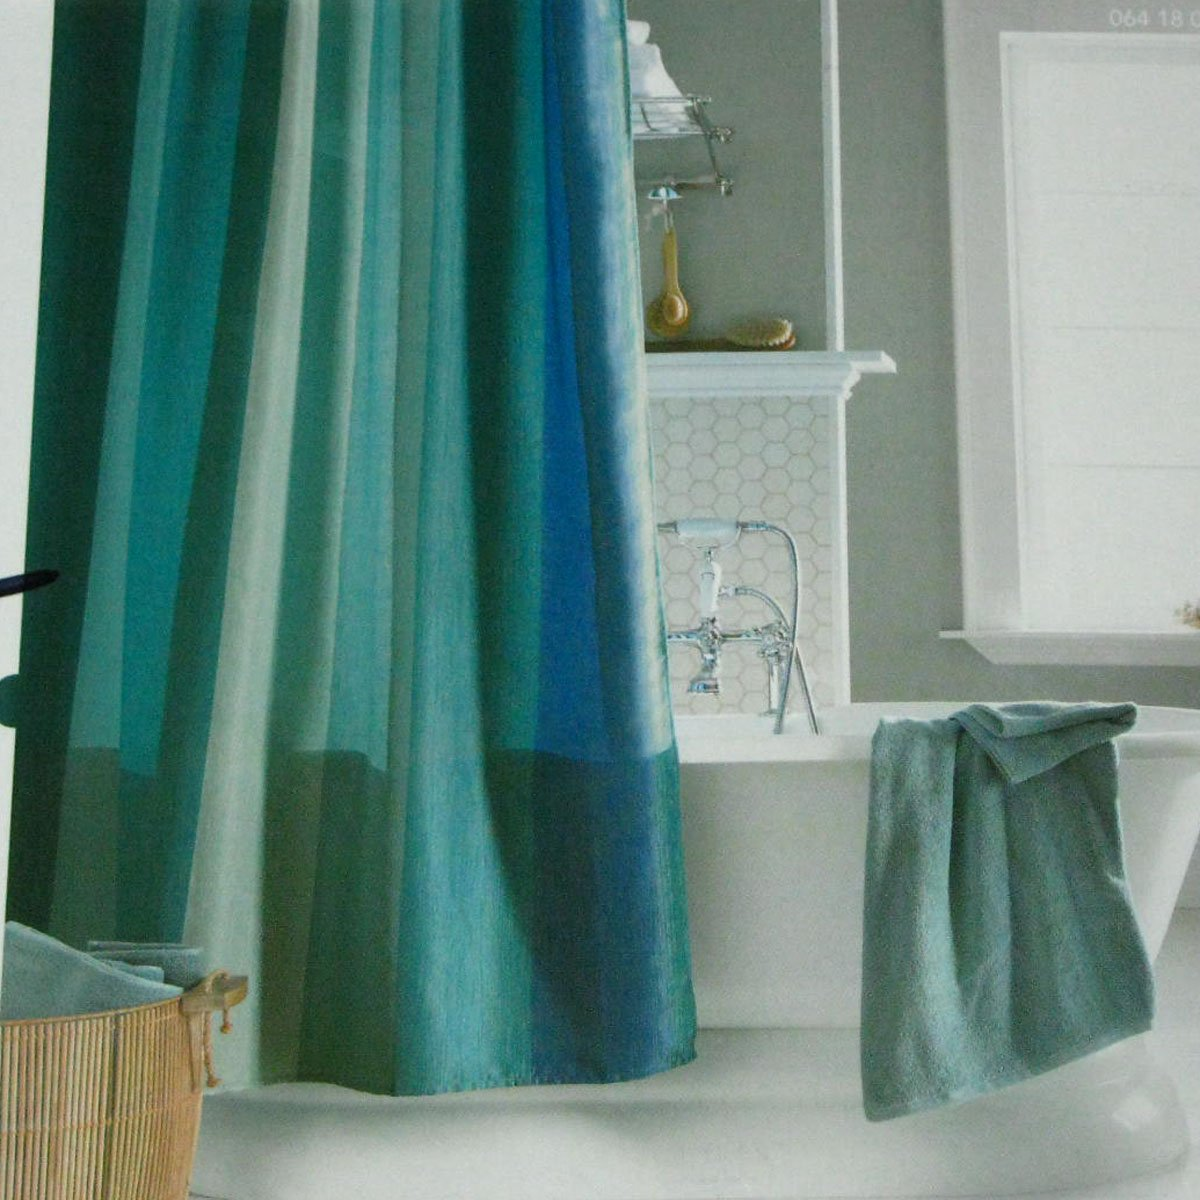 target aquamarine multistripe blue aqua green fabric shower curtain home threshold. Black Bedroom Furniture Sets. Home Design Ideas